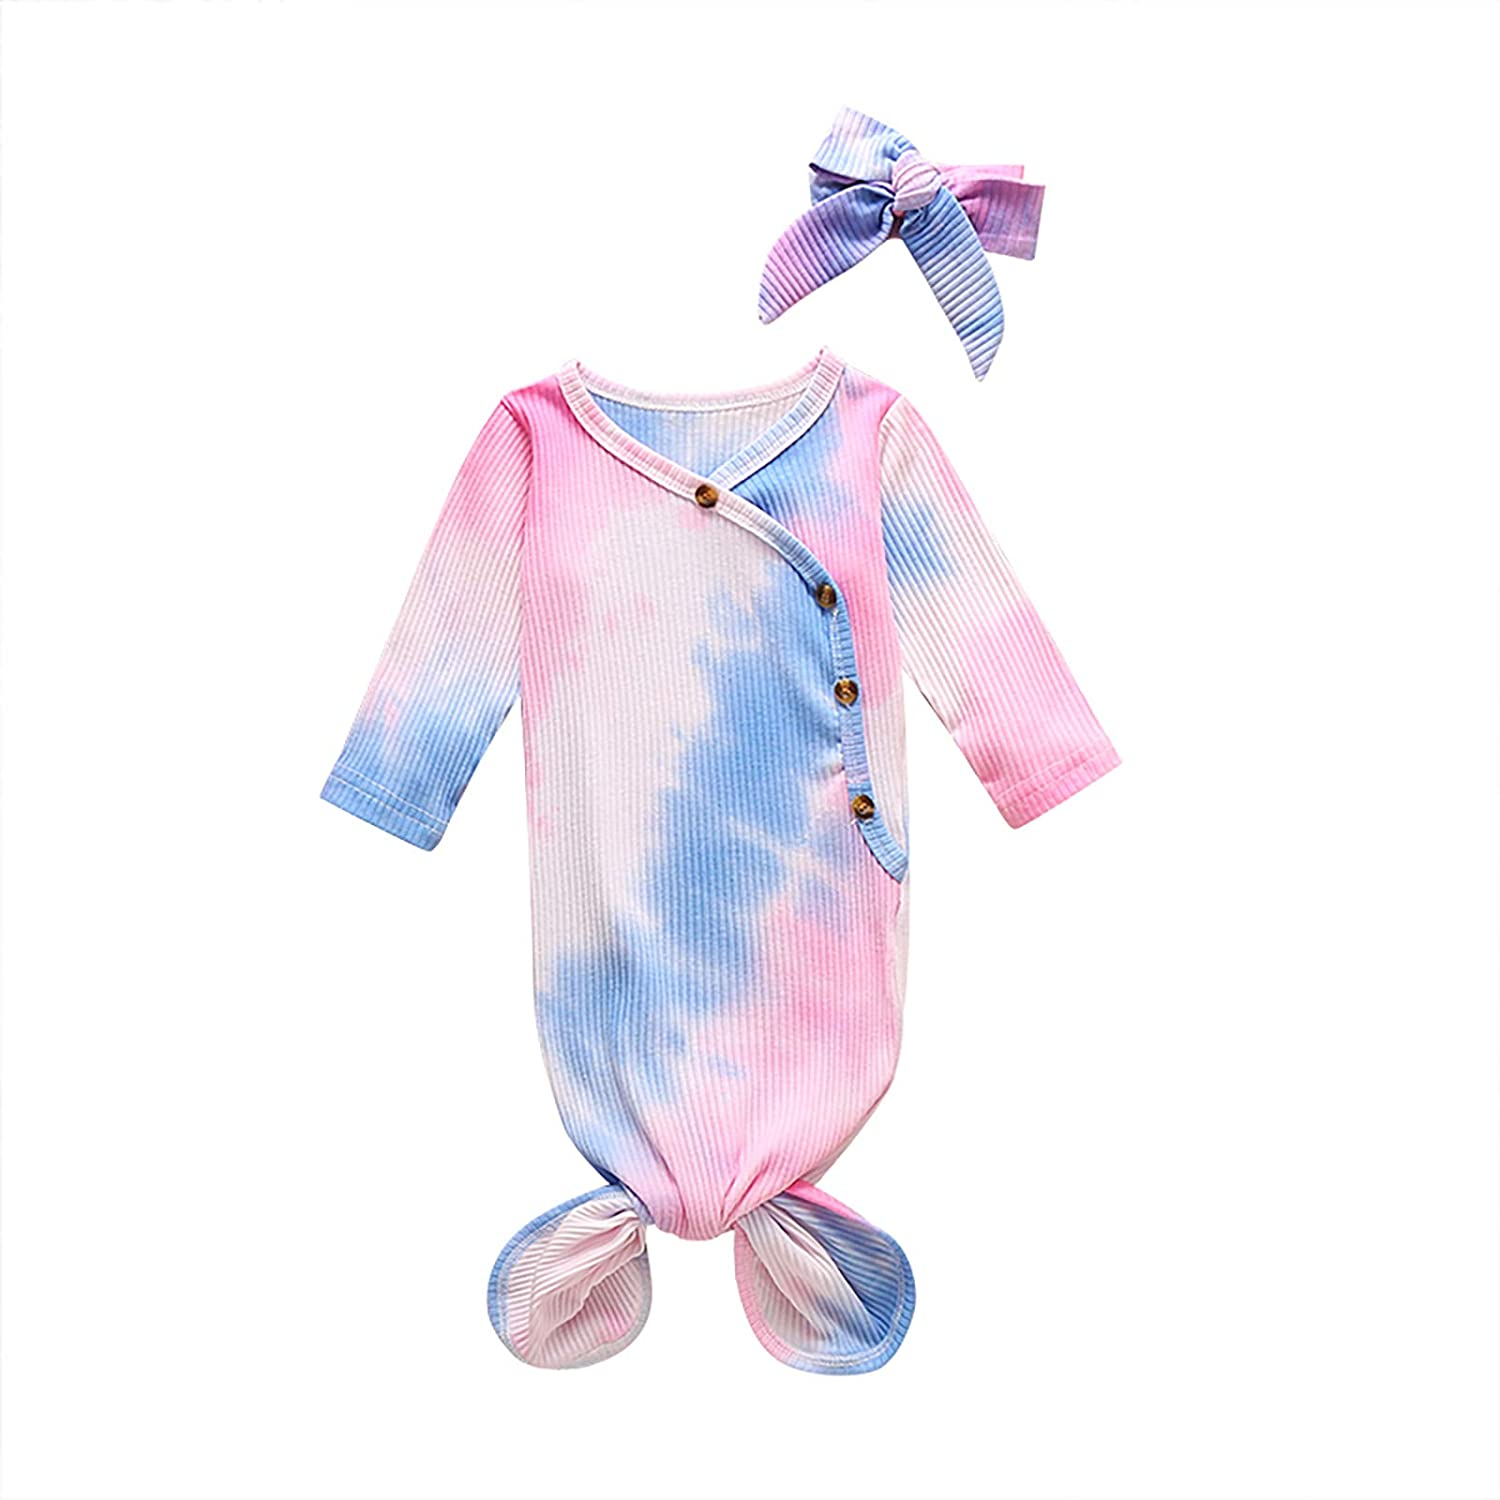 IDOPIP Newborn Baby Boy Girl Tie Dye Clothes Ribbed Gown Swaddle Wrap Knotted Sleepwear Sleeping Bags Hat Pajamas Set Outfit